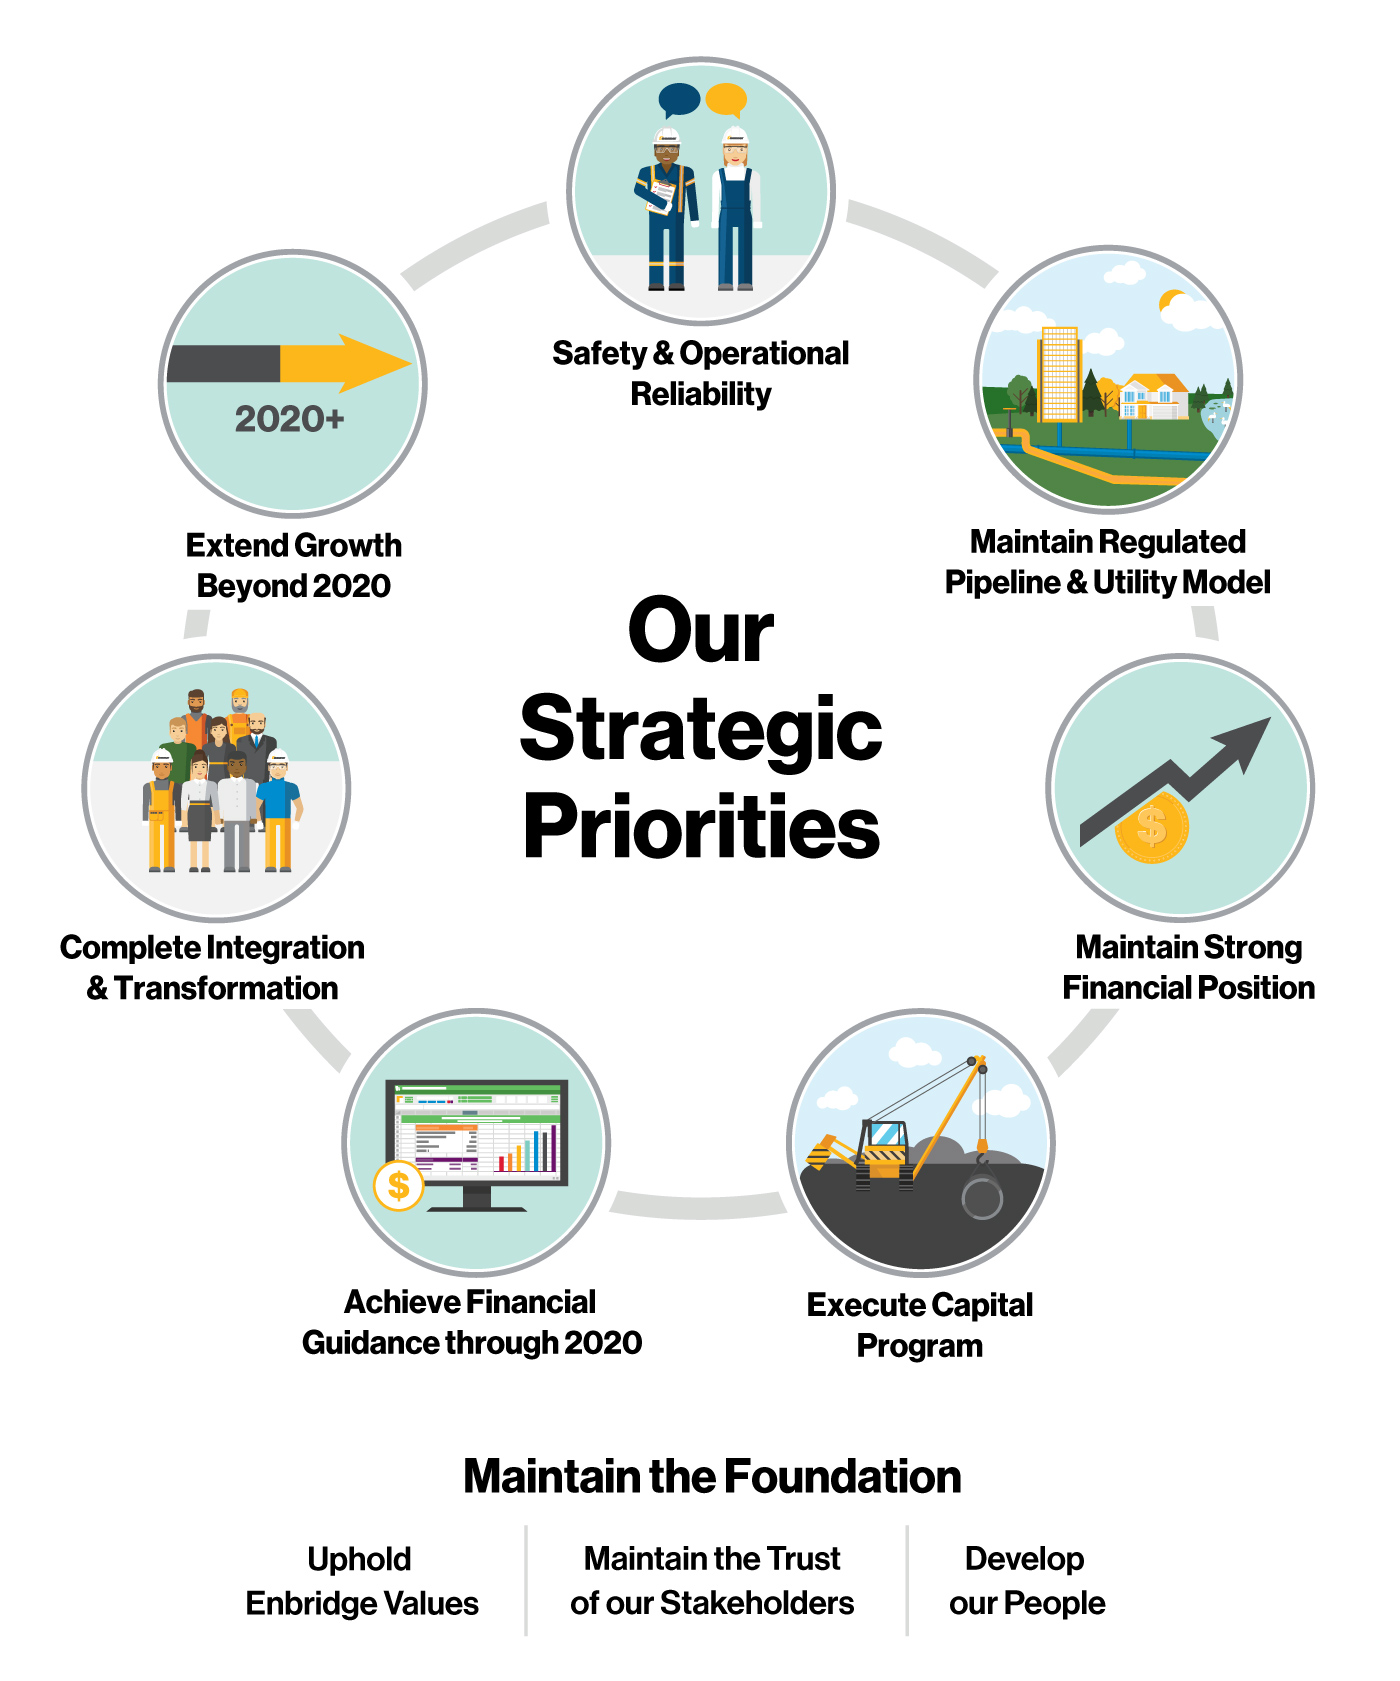 Enbridge's Strategic Priorities